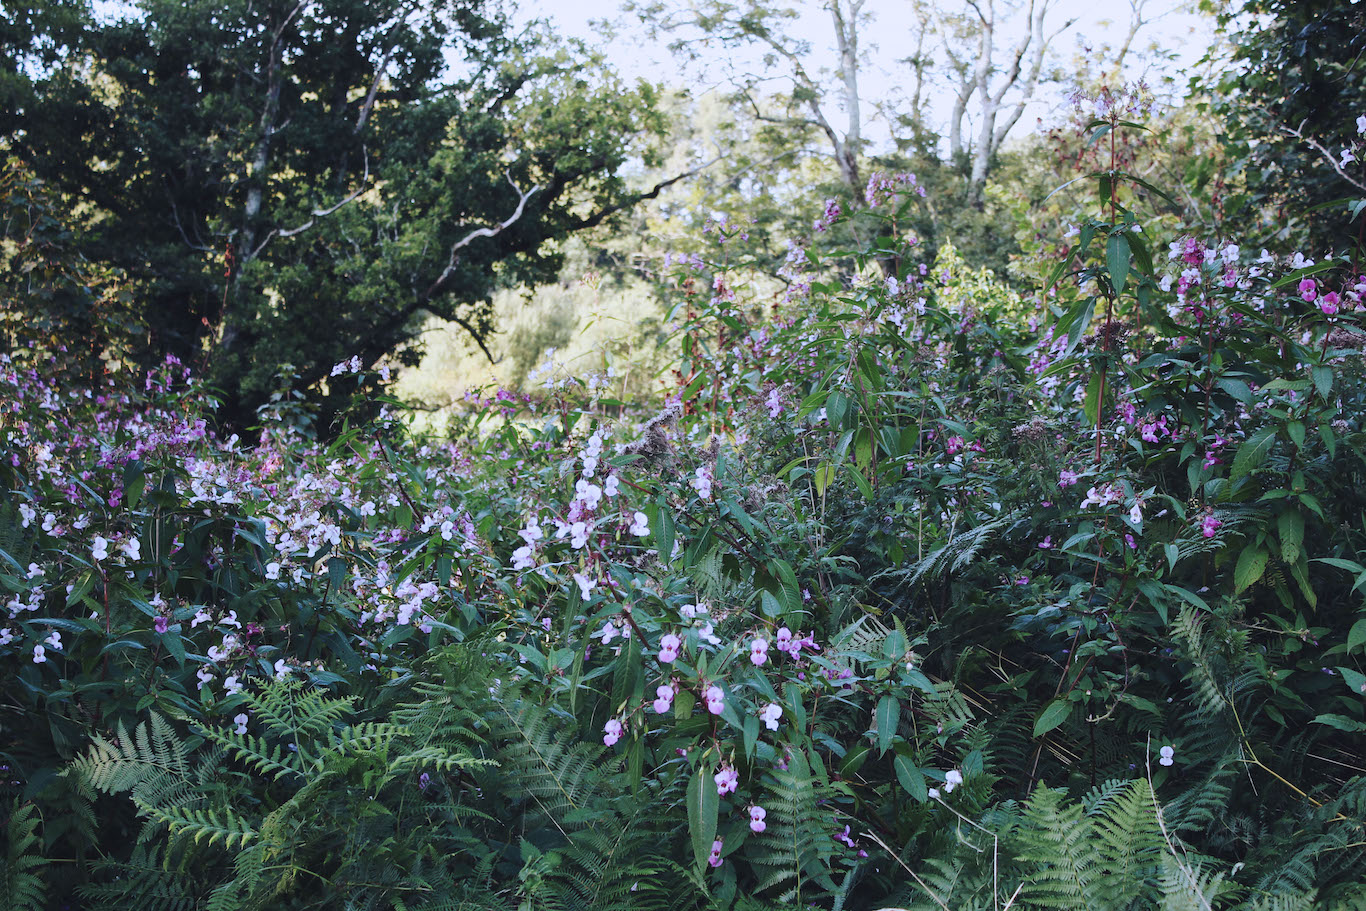 Wildflowers along the banks of the River Dart